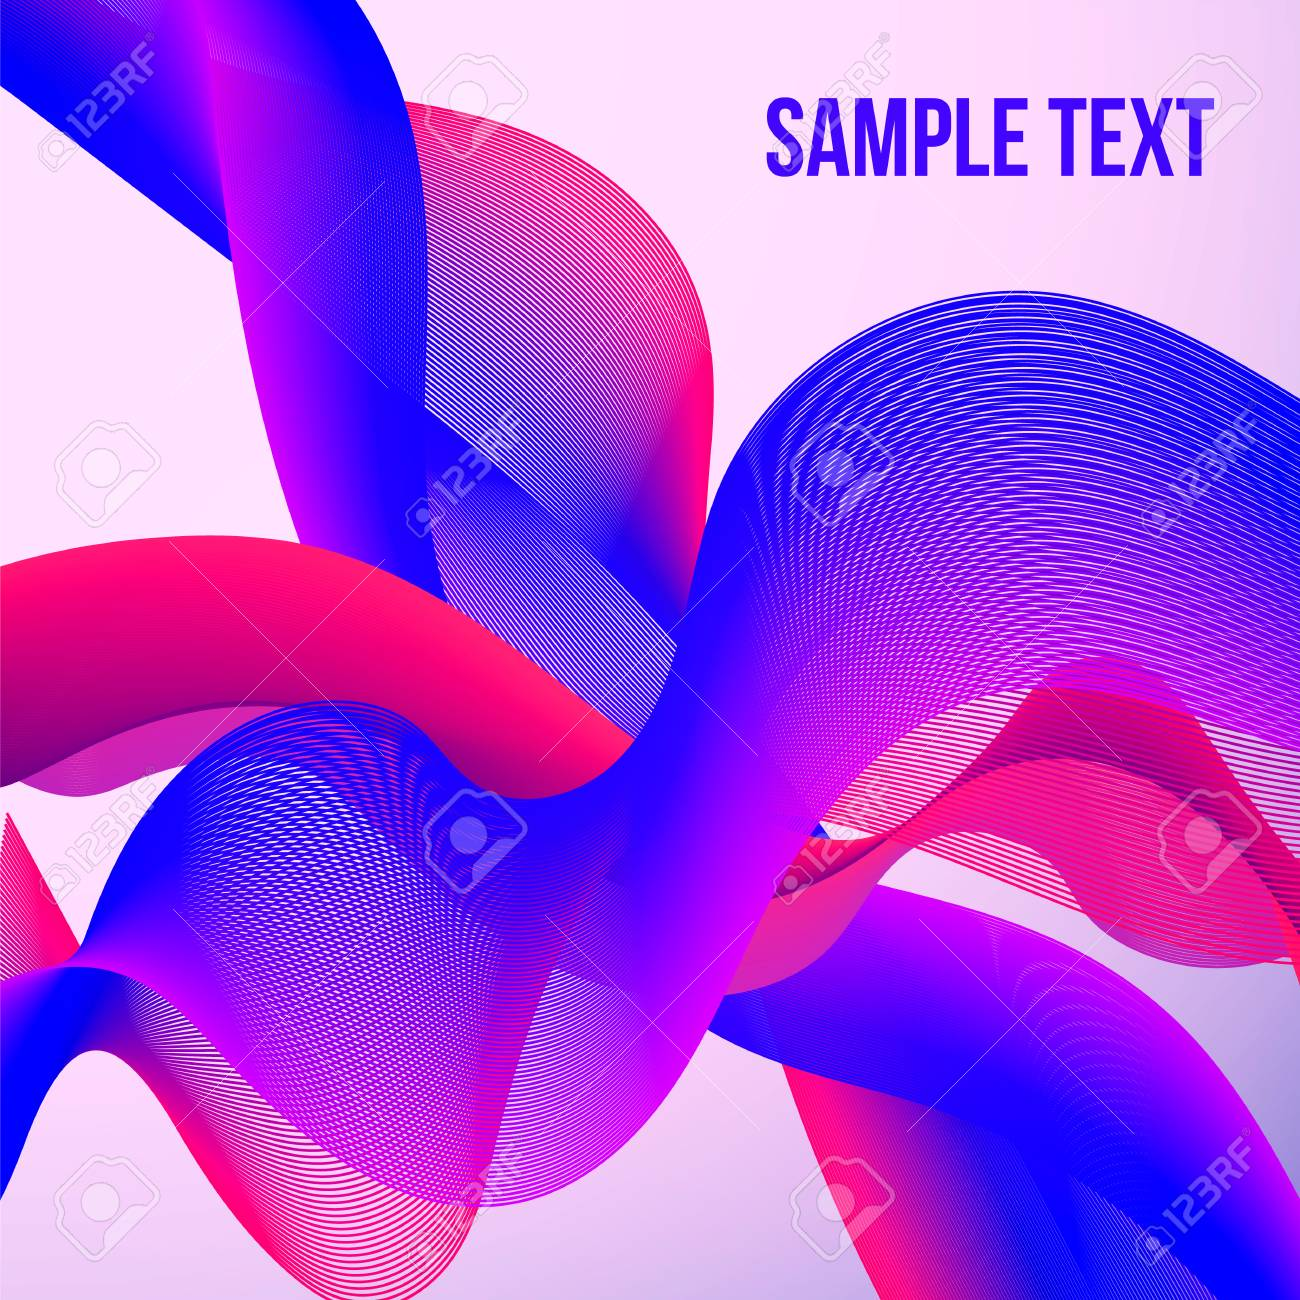 colorful moving wavy lines abstract bright wave background